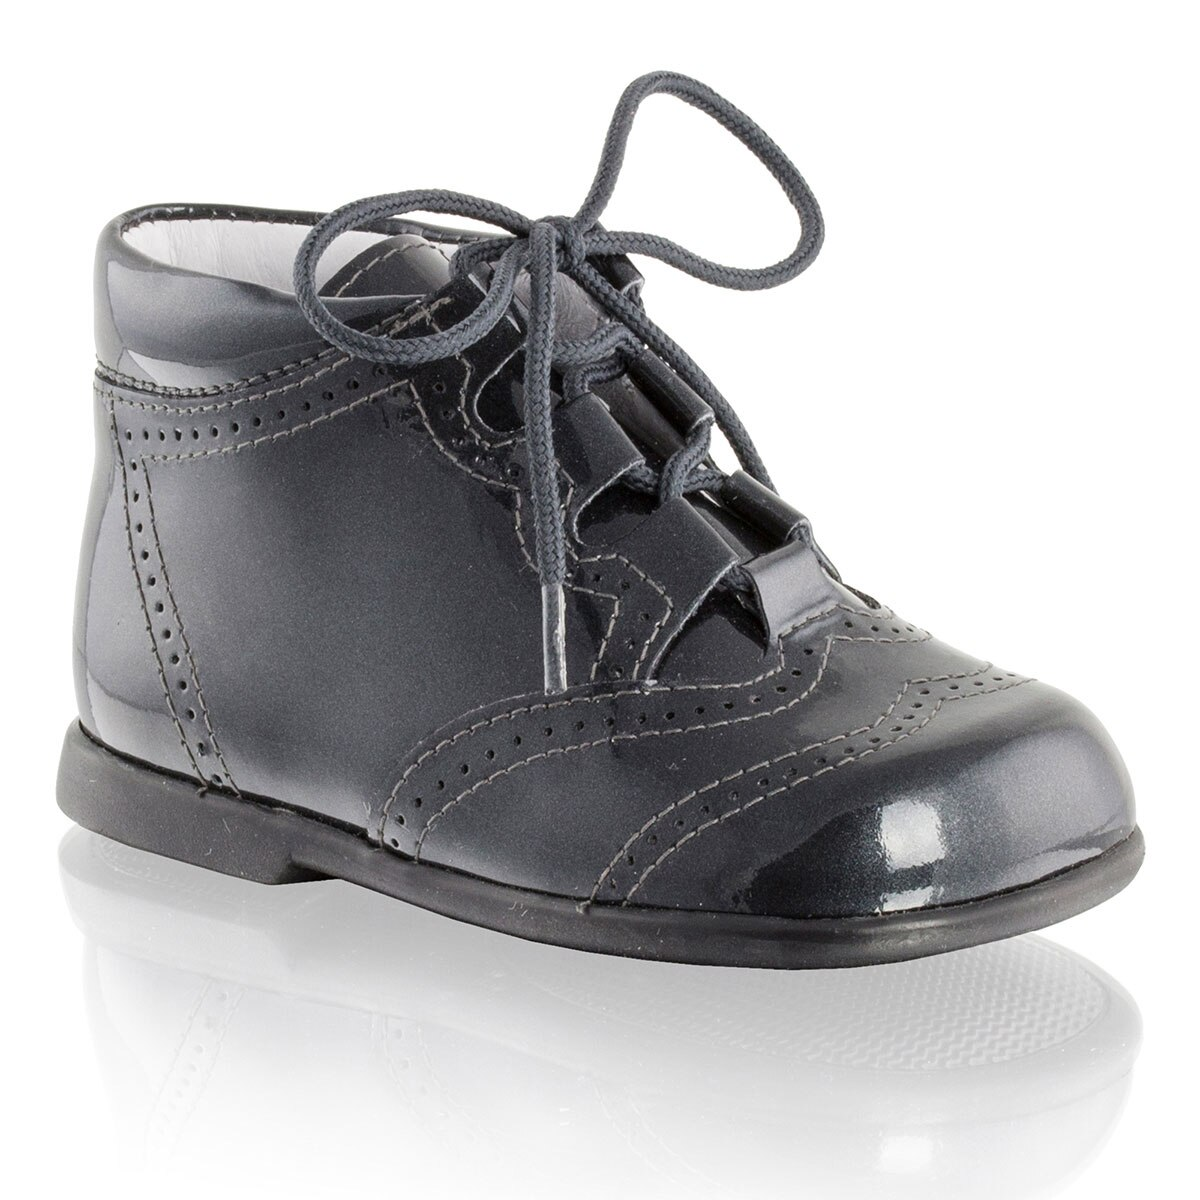 Russell and Bromley GILLY Brogued Lace-Up Boot